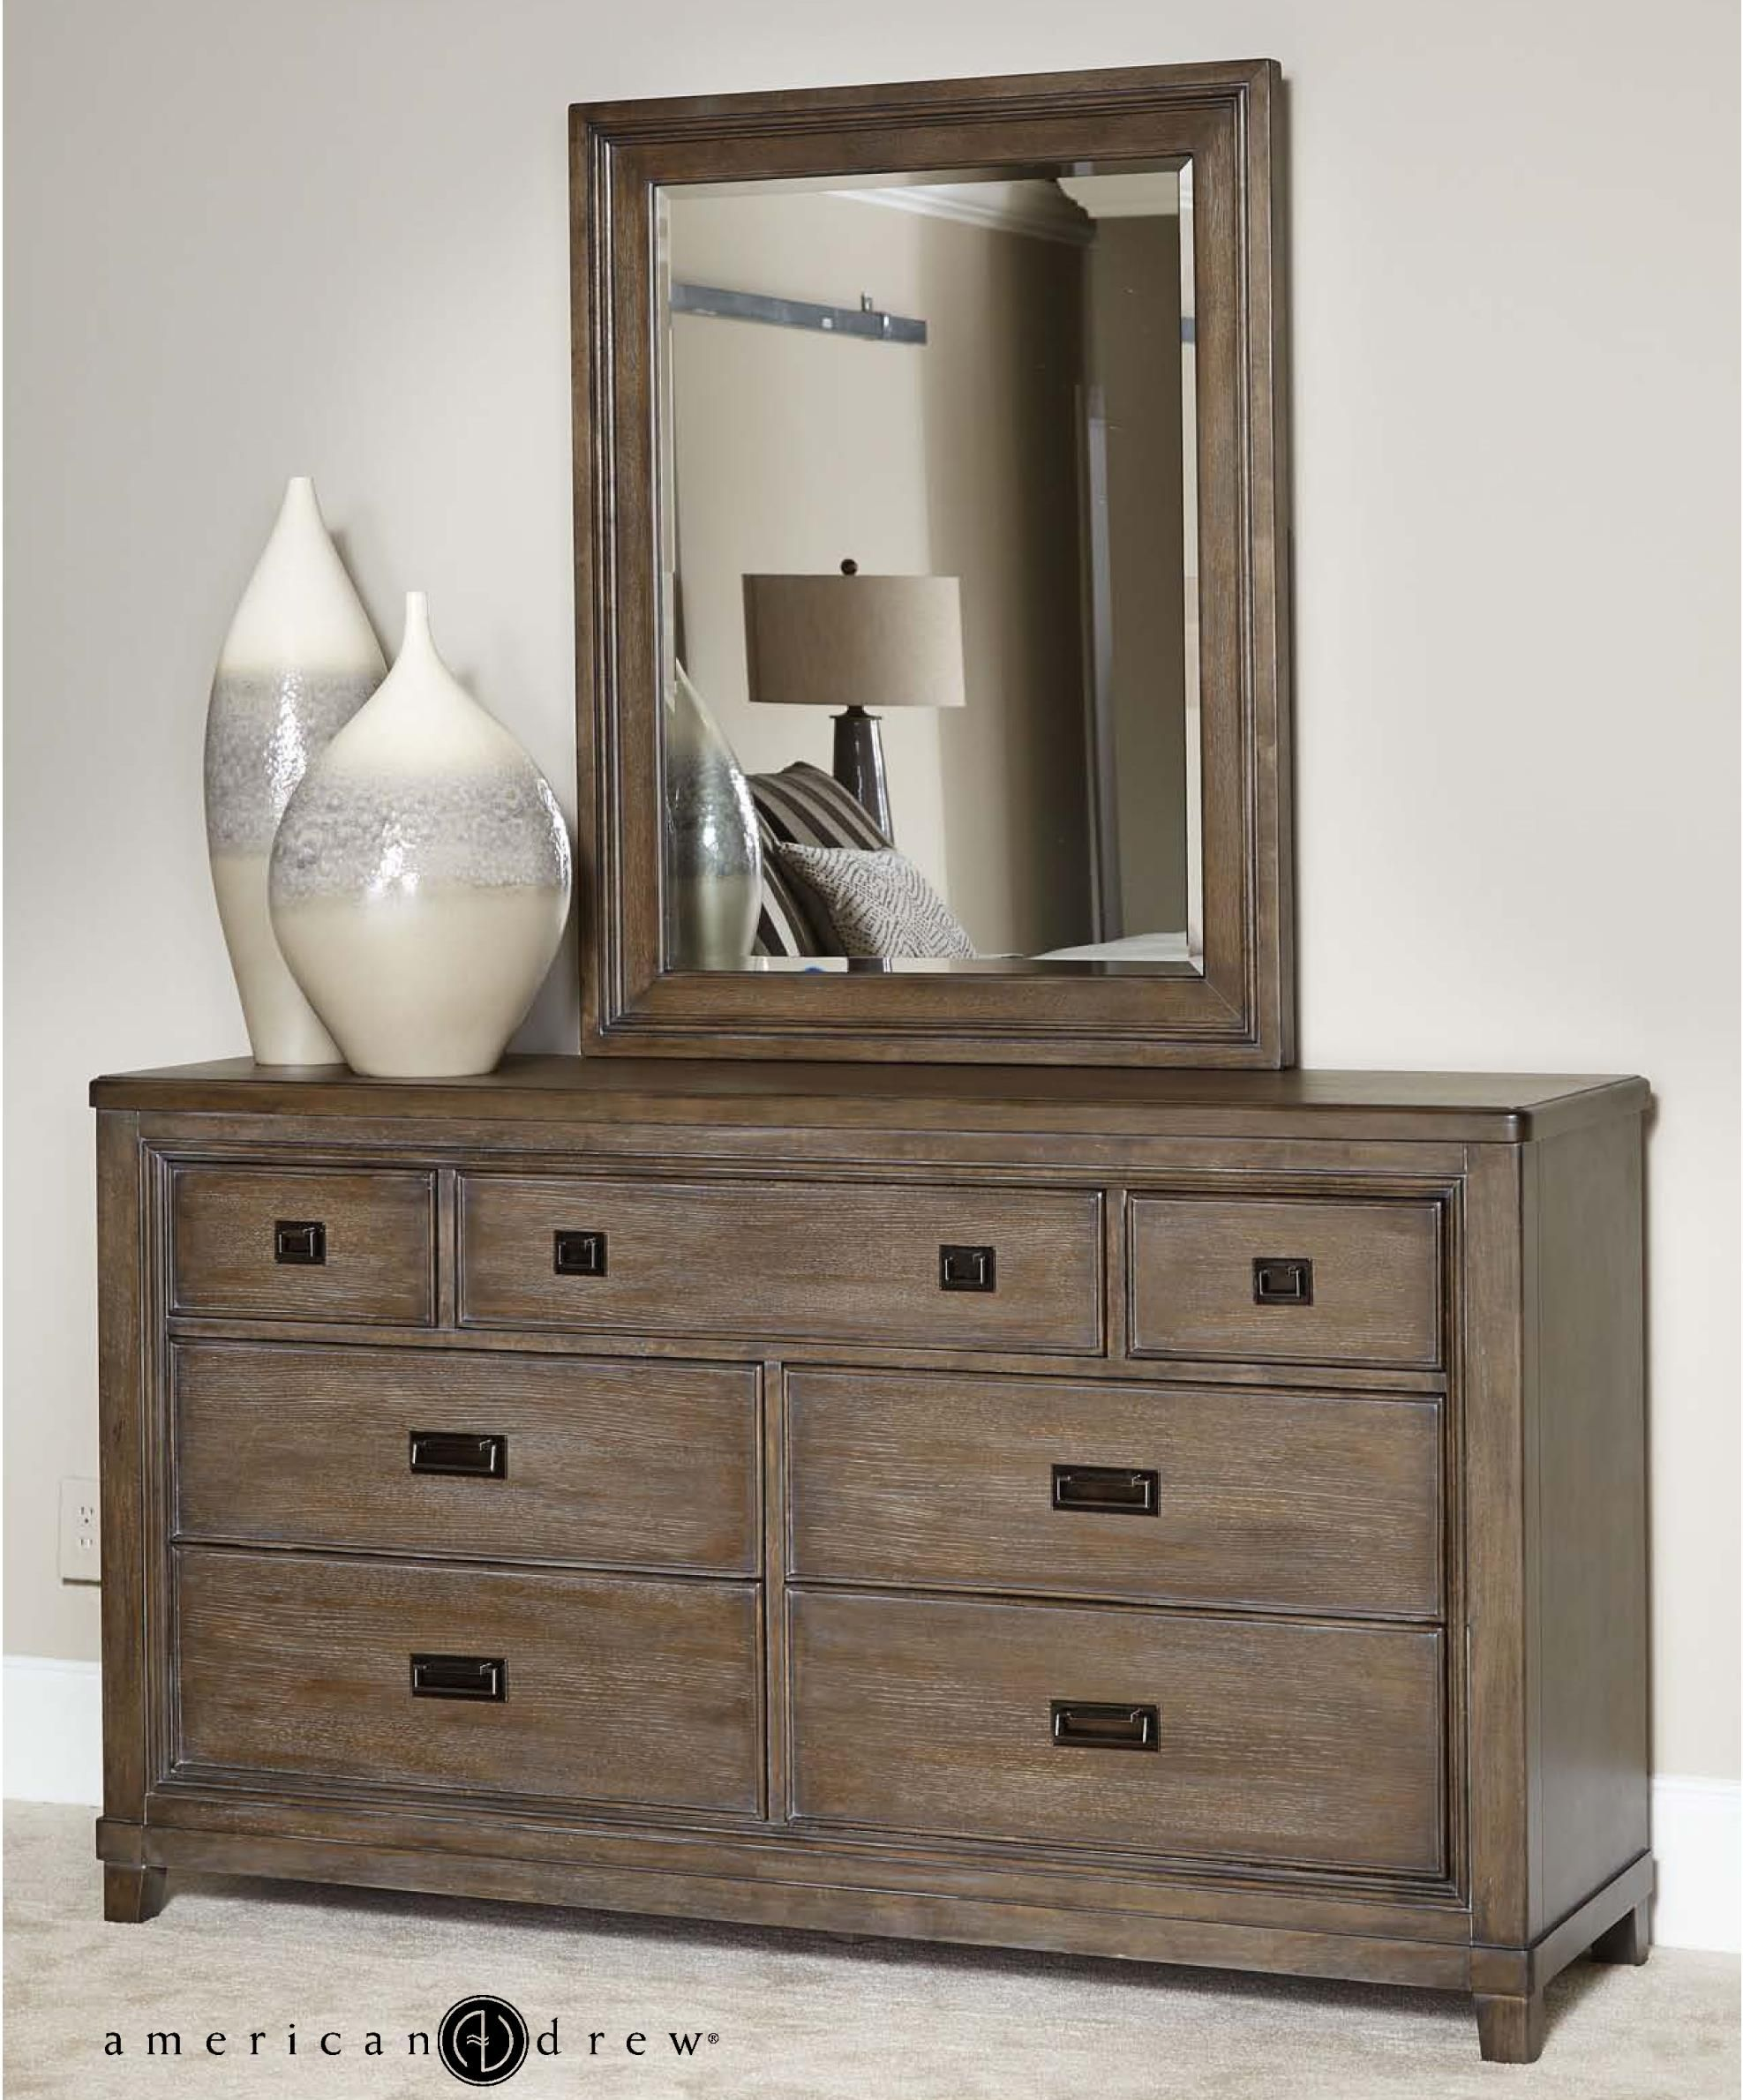 Park Studio Dresser and Mirror Set by American Drew